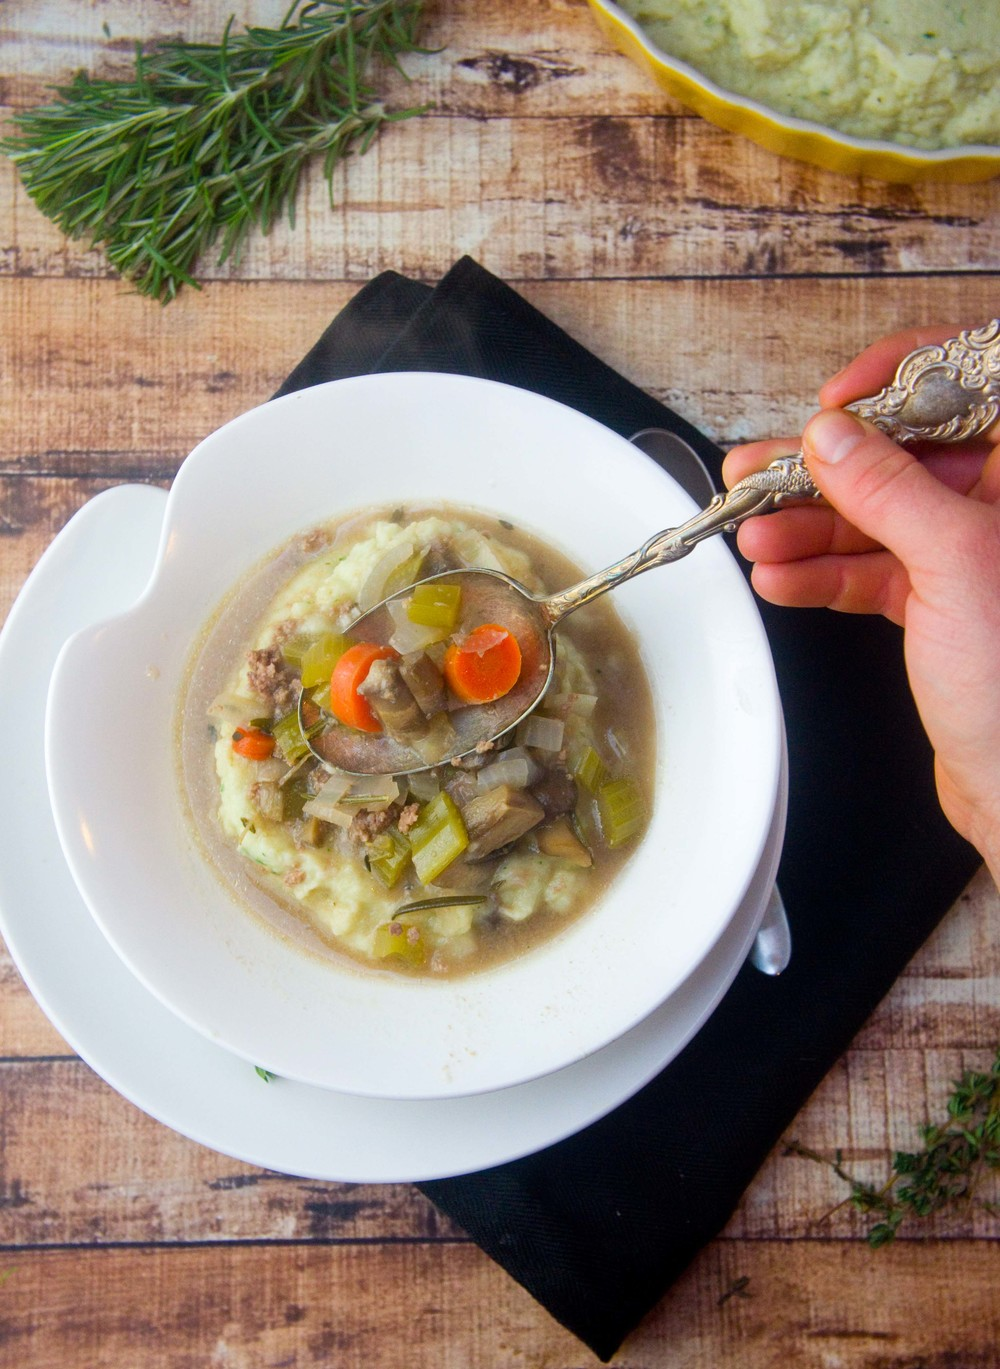 Paleo Rosemary & Thyme Beef Stew over Garlic Cauliflower Mashers